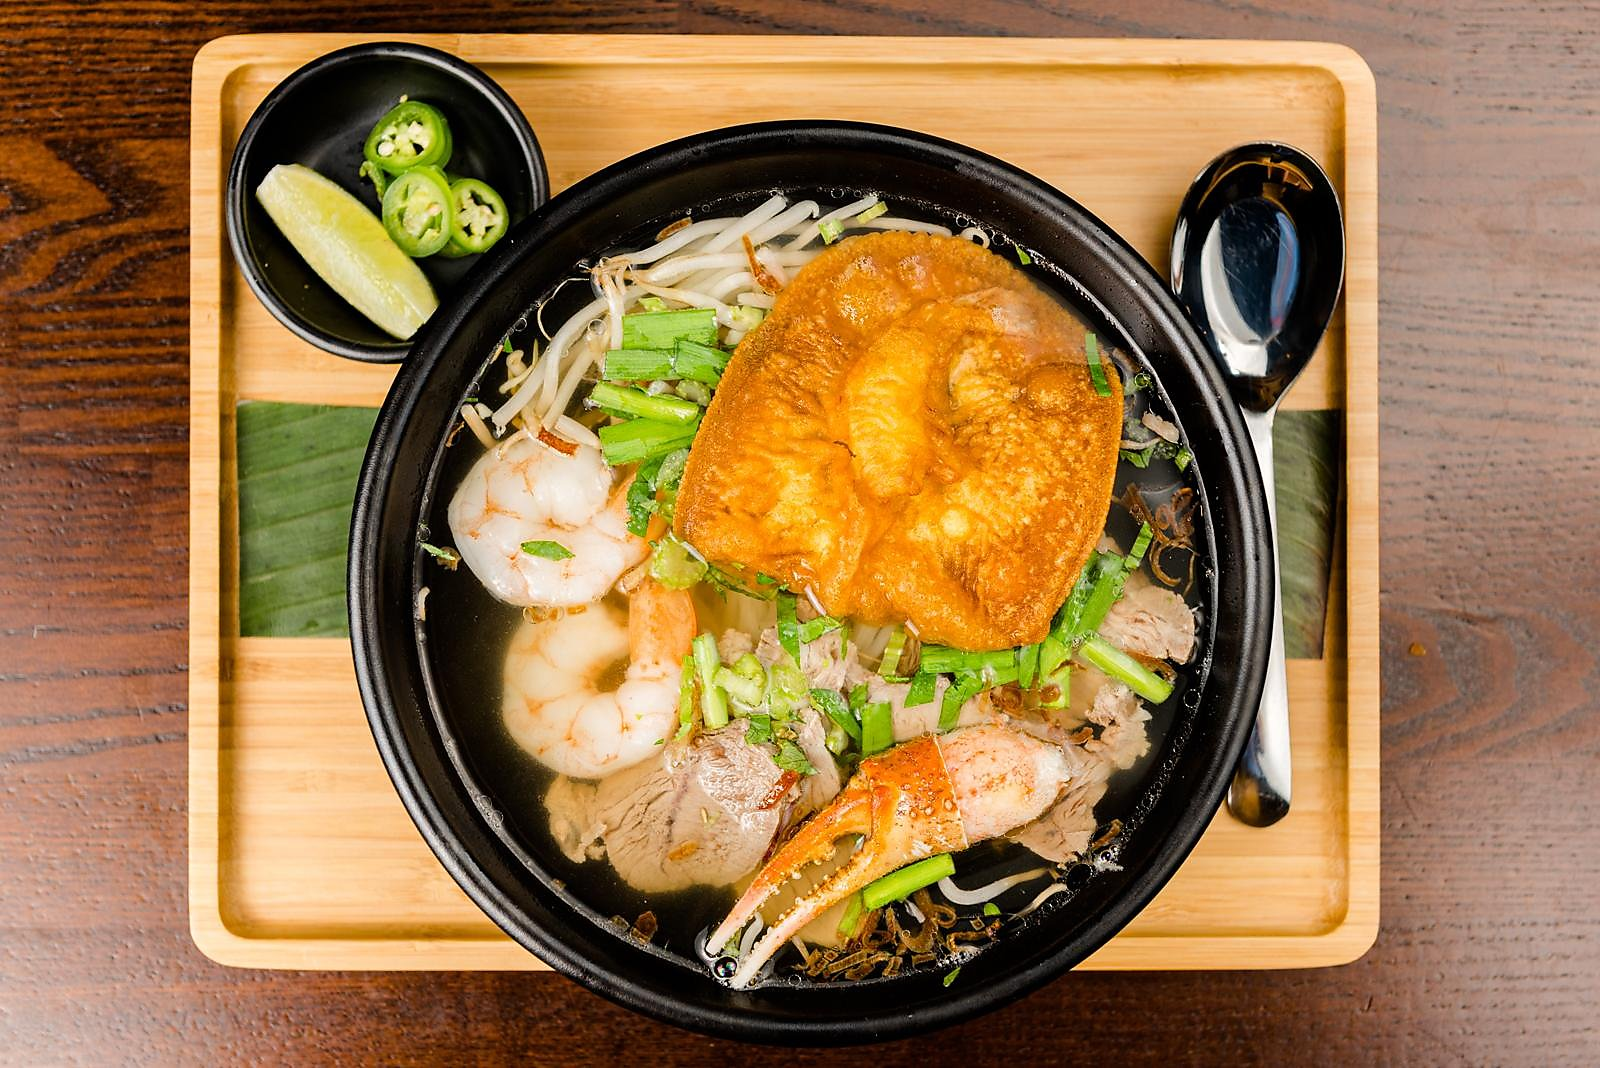 The best takeout and delivery spots in the South Bay and Peninsula